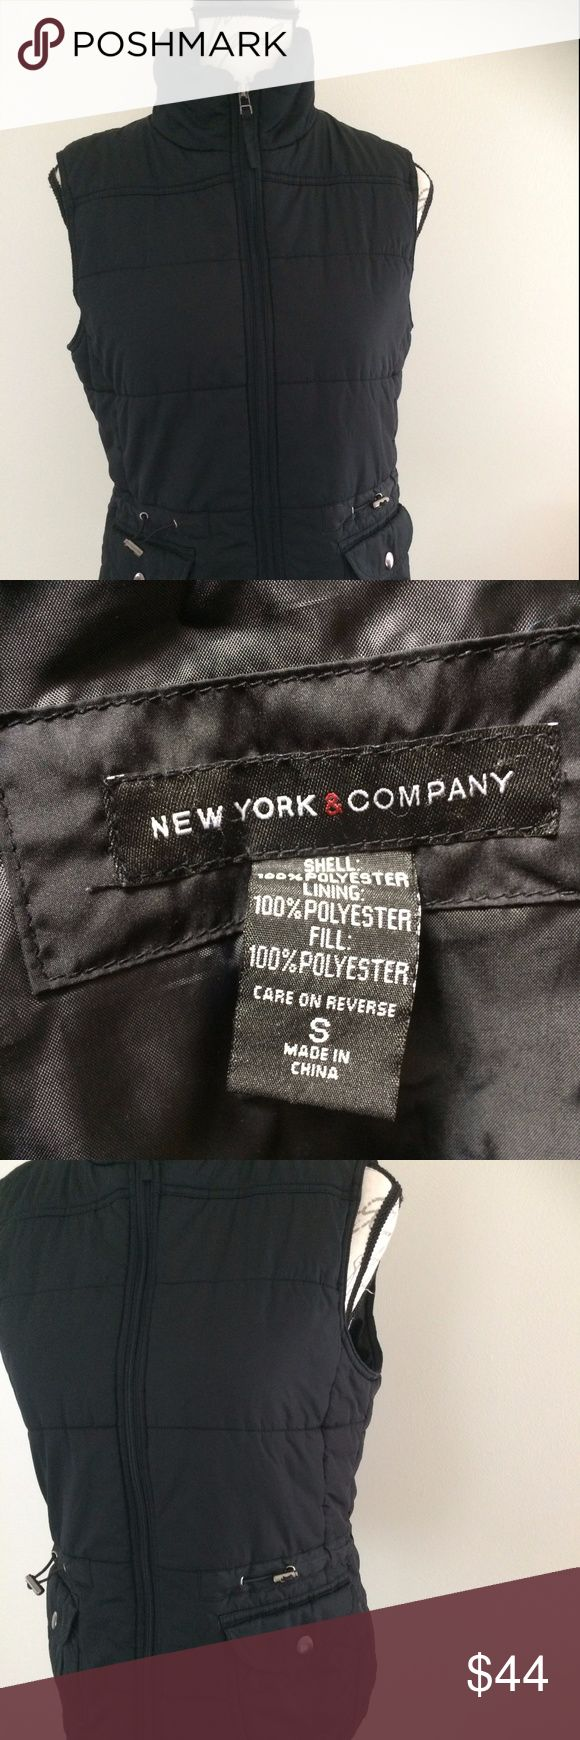 "New York and Company Black Vest Puffer Small Machine wash. Used but good condition. 100% polyester, lined in 100% polyester. Made in China.  Dry clean with toggles at the waist so you can get a great fit. 24"" long, 19"" bust laid flat approximately.  Make me an offer! New York and Company Jackets & Coats Vests"